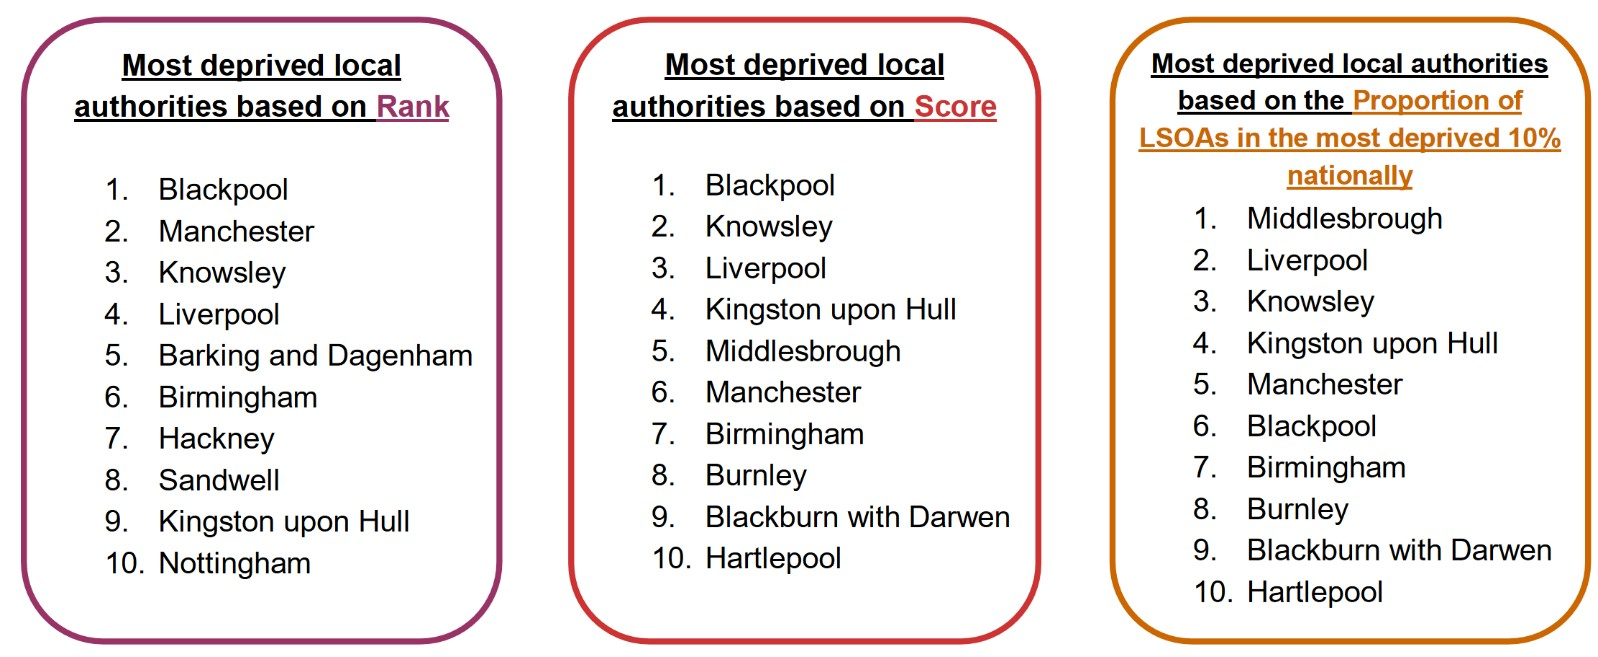 Most deprived areas